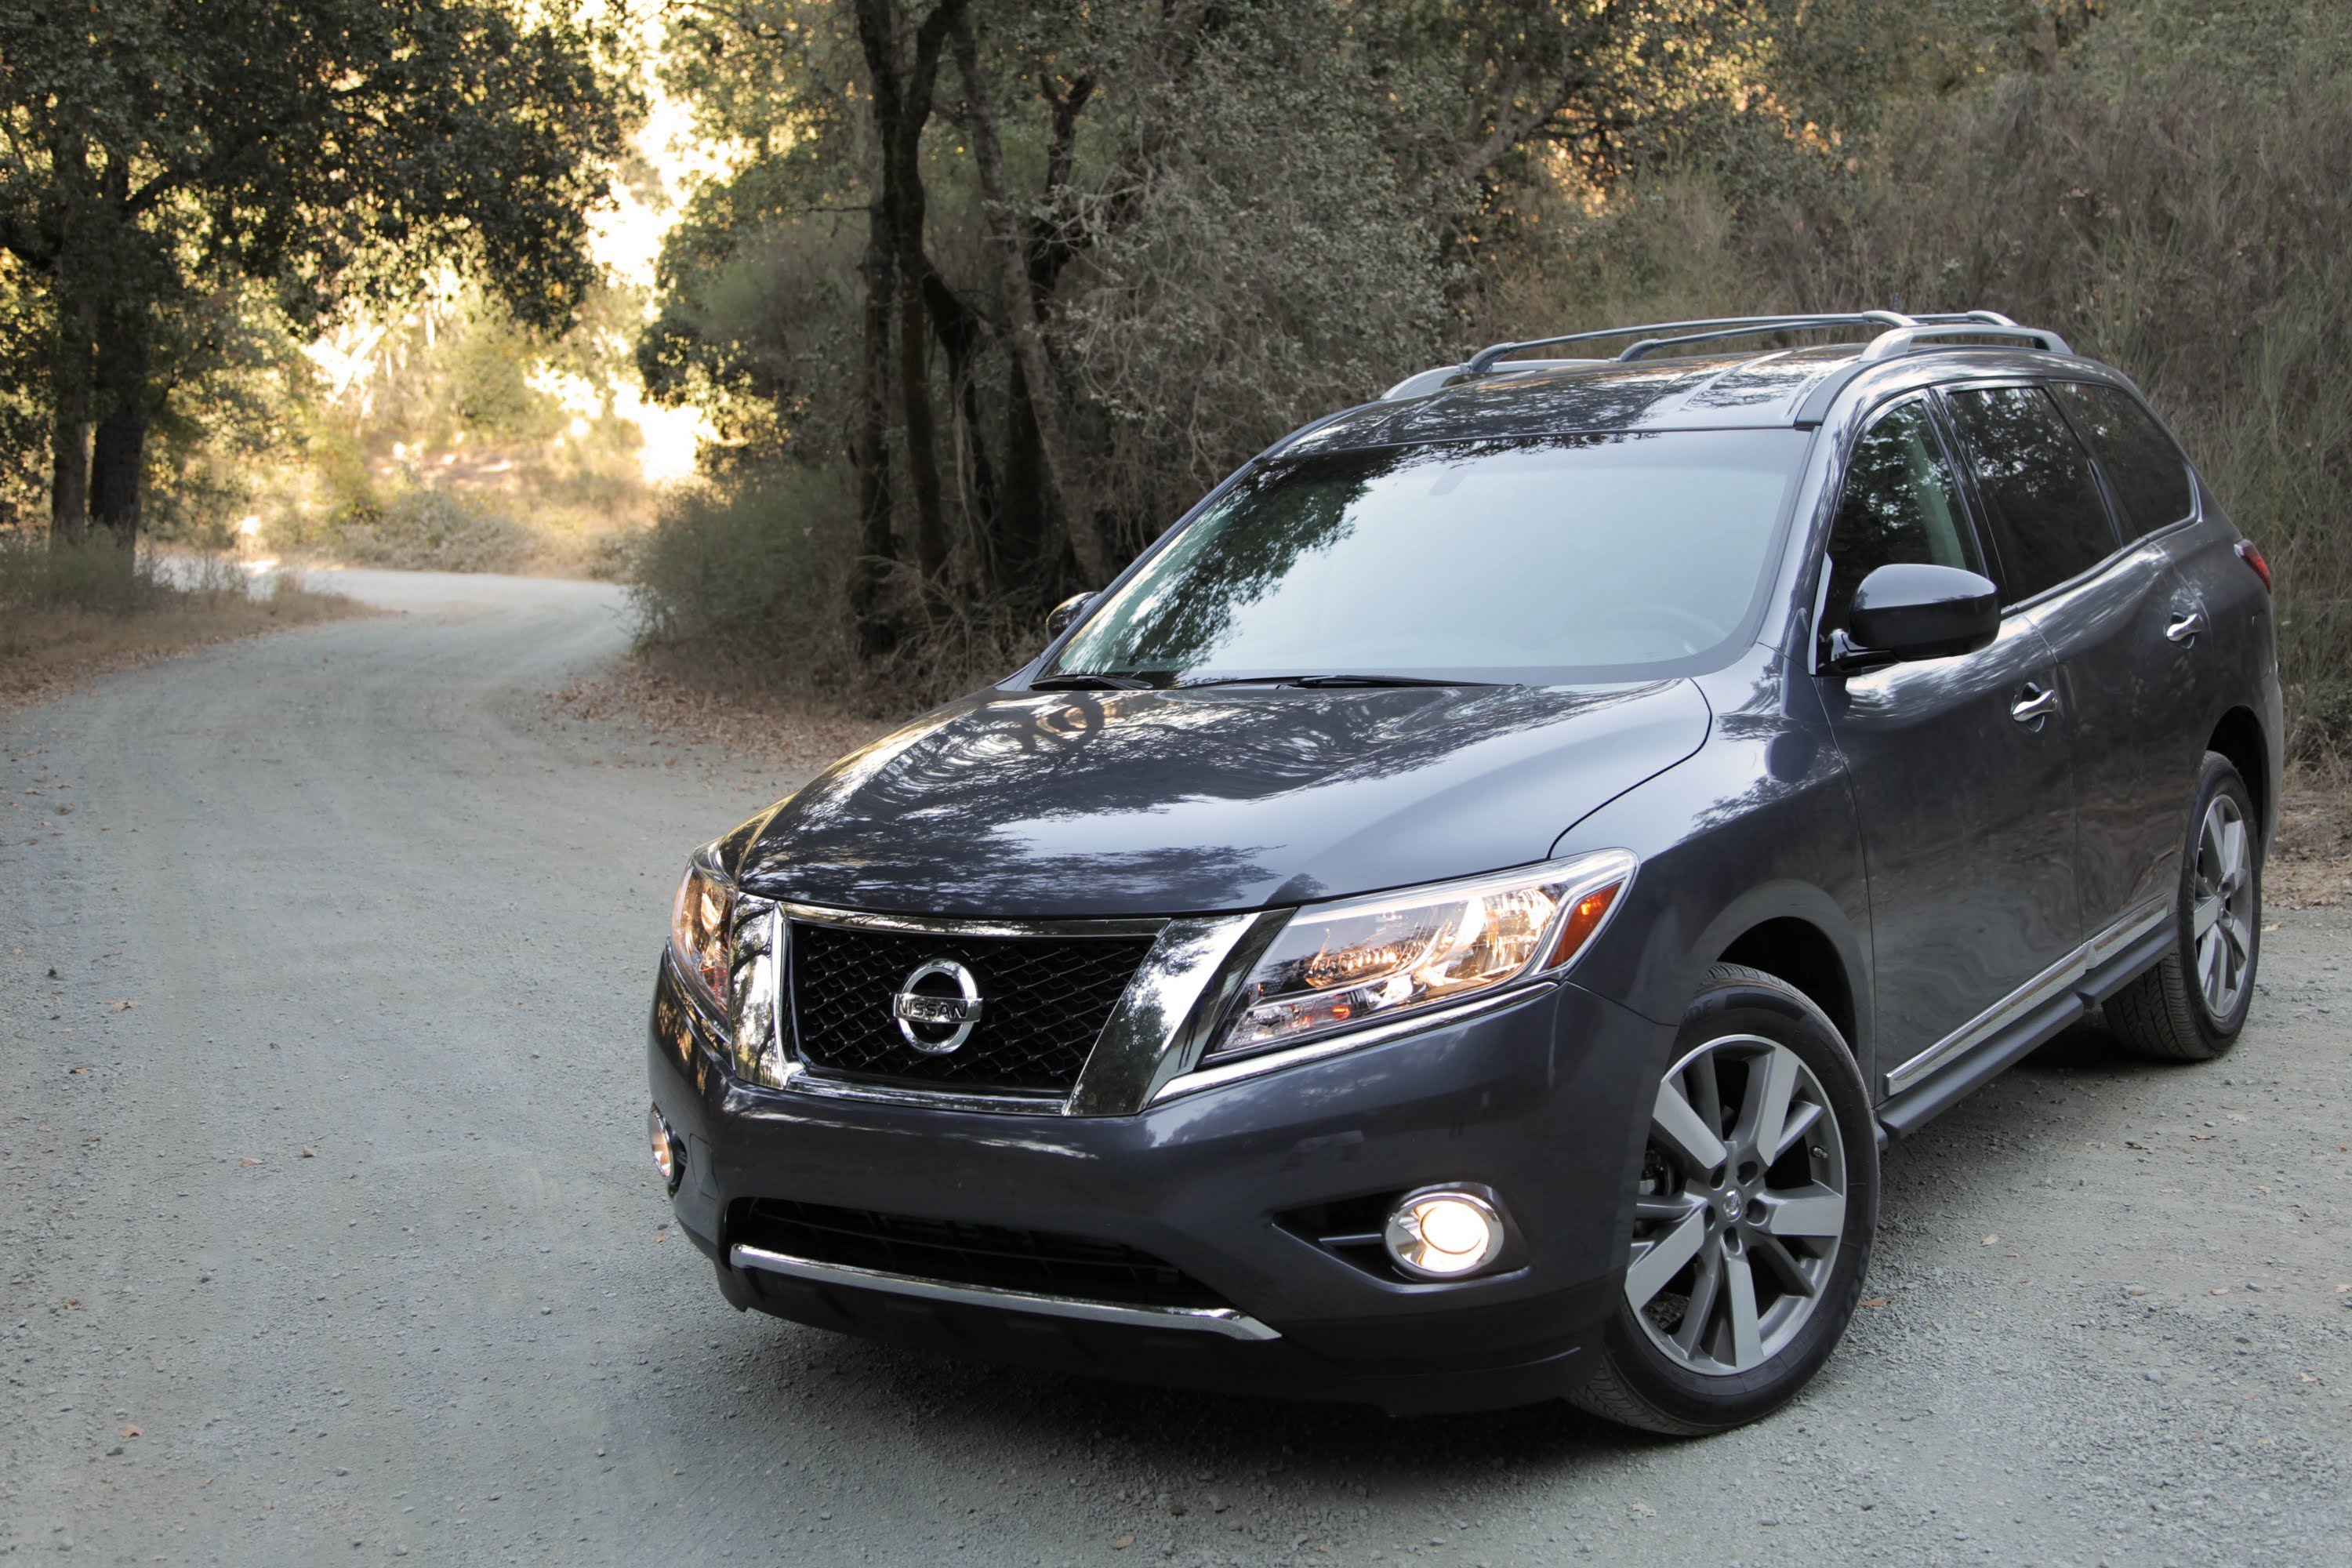 2013-nissan-pathfinder-1309562-3592980 Cool Review About High Ground Pathfinder with Amazing Pictures Cars Review